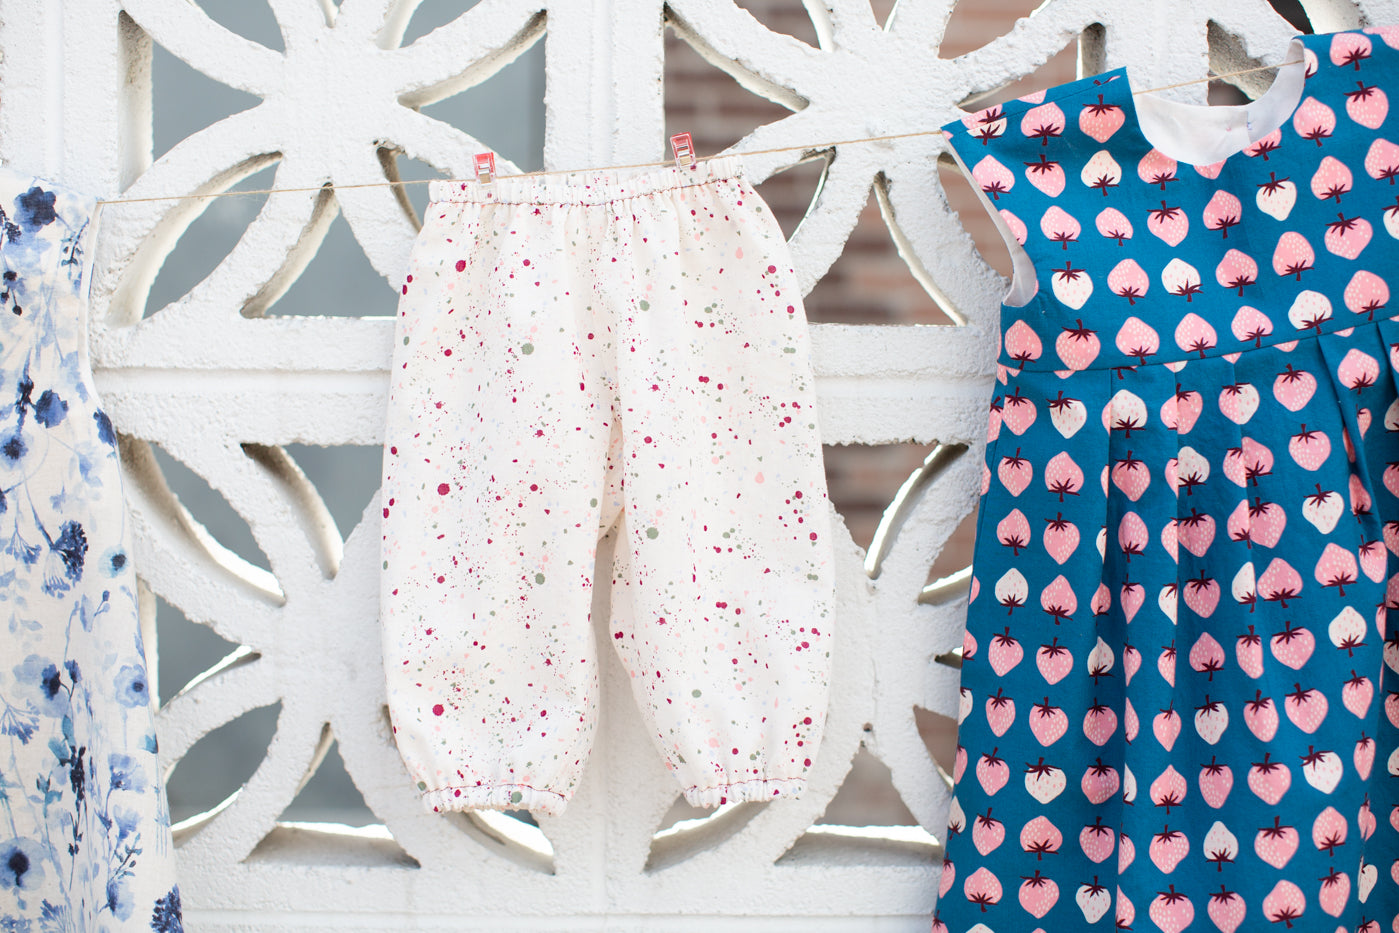 Little off white colorful splattered kids bloomers against a white brick wall.